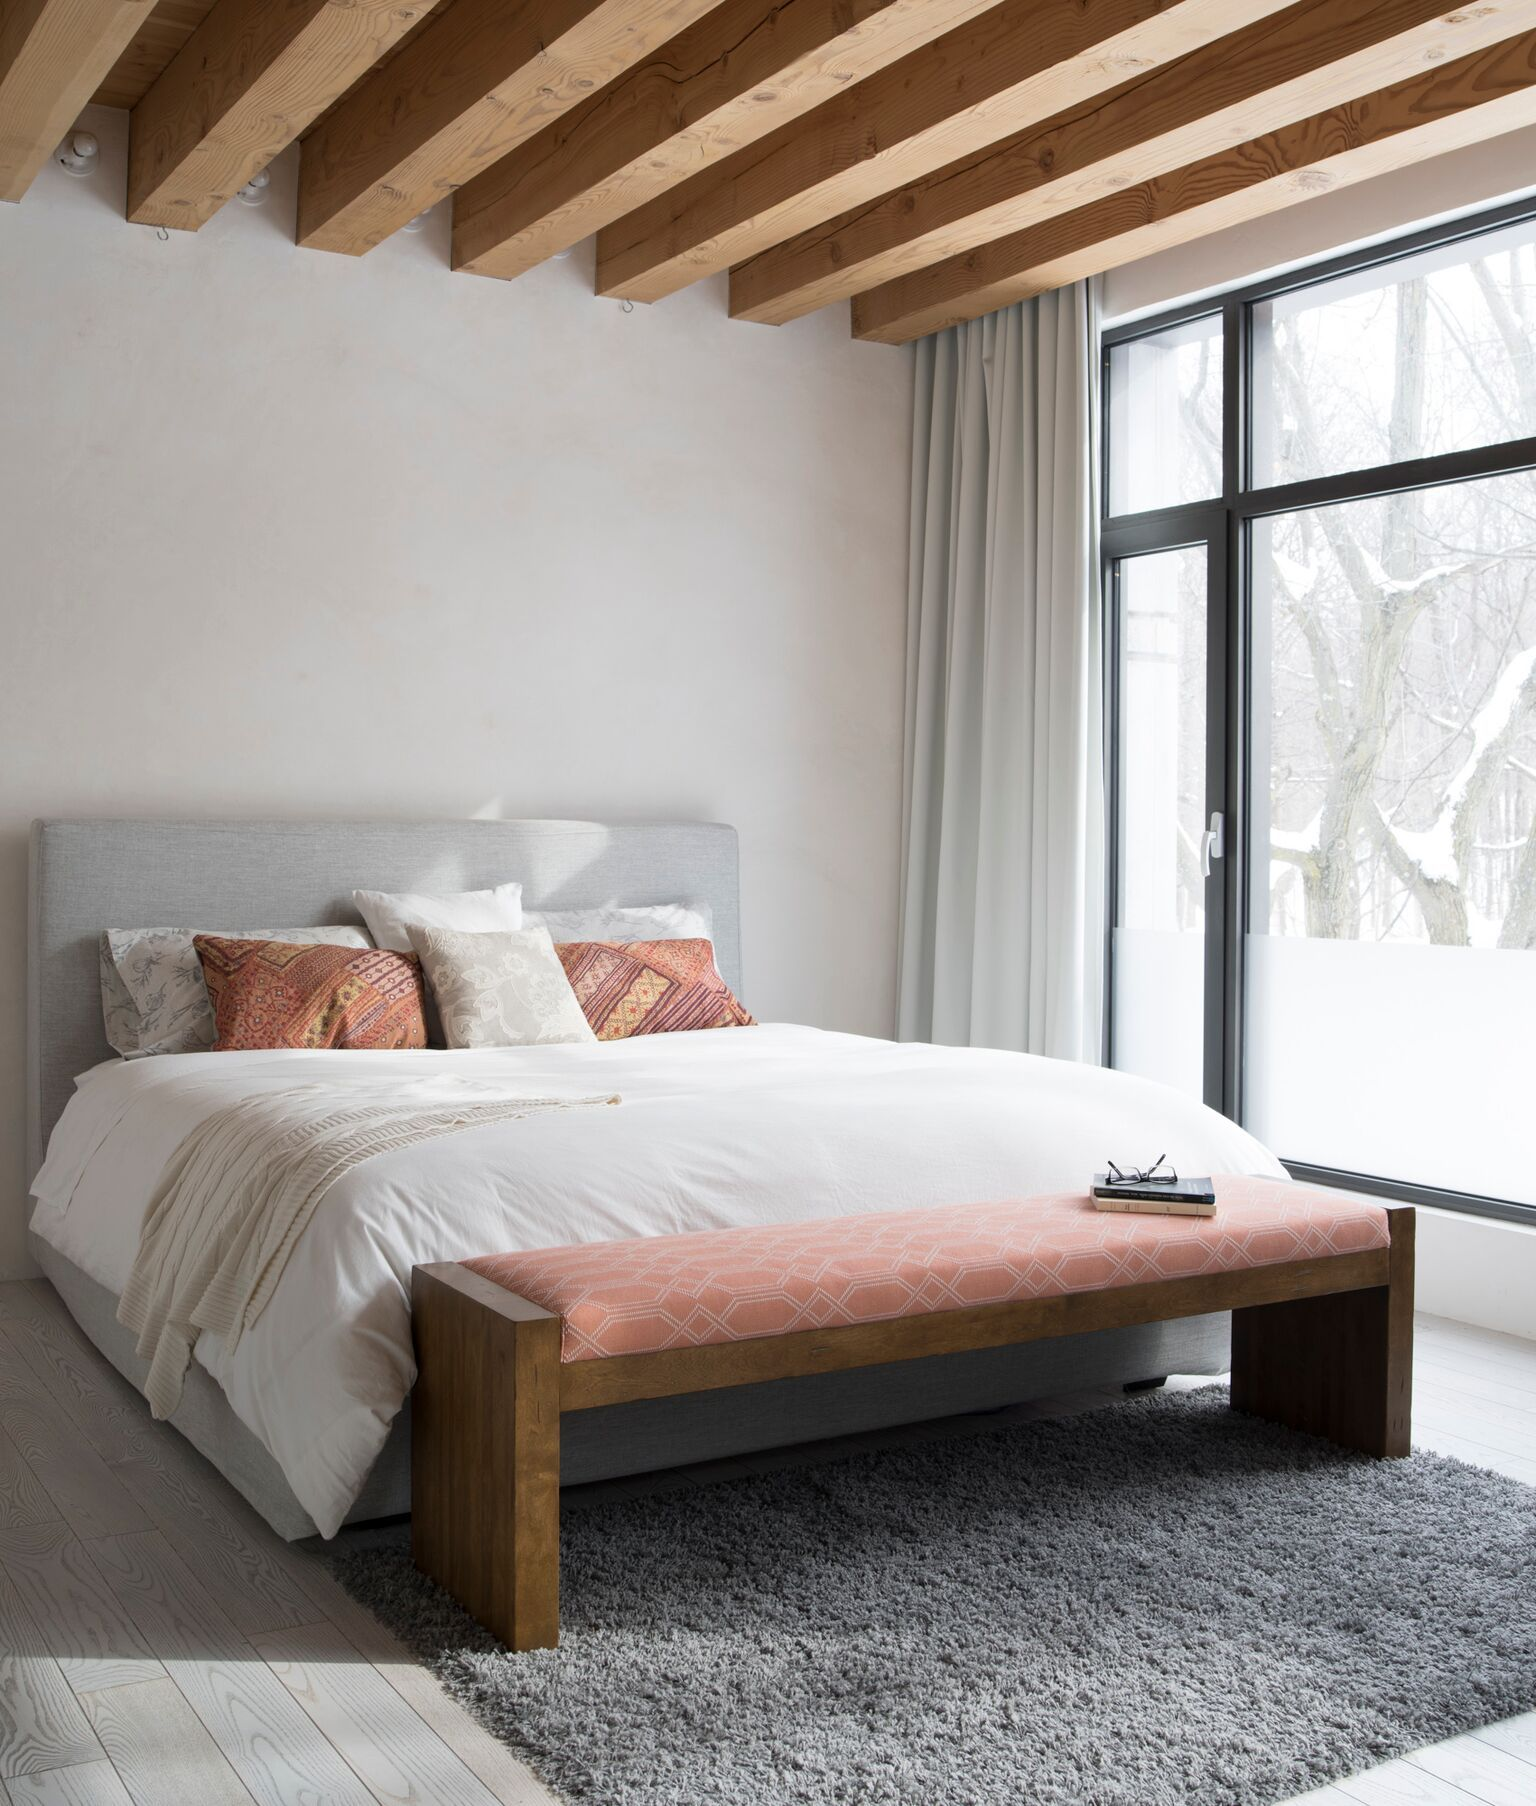 Create a chic bedroom by adding a bench at the foot of the